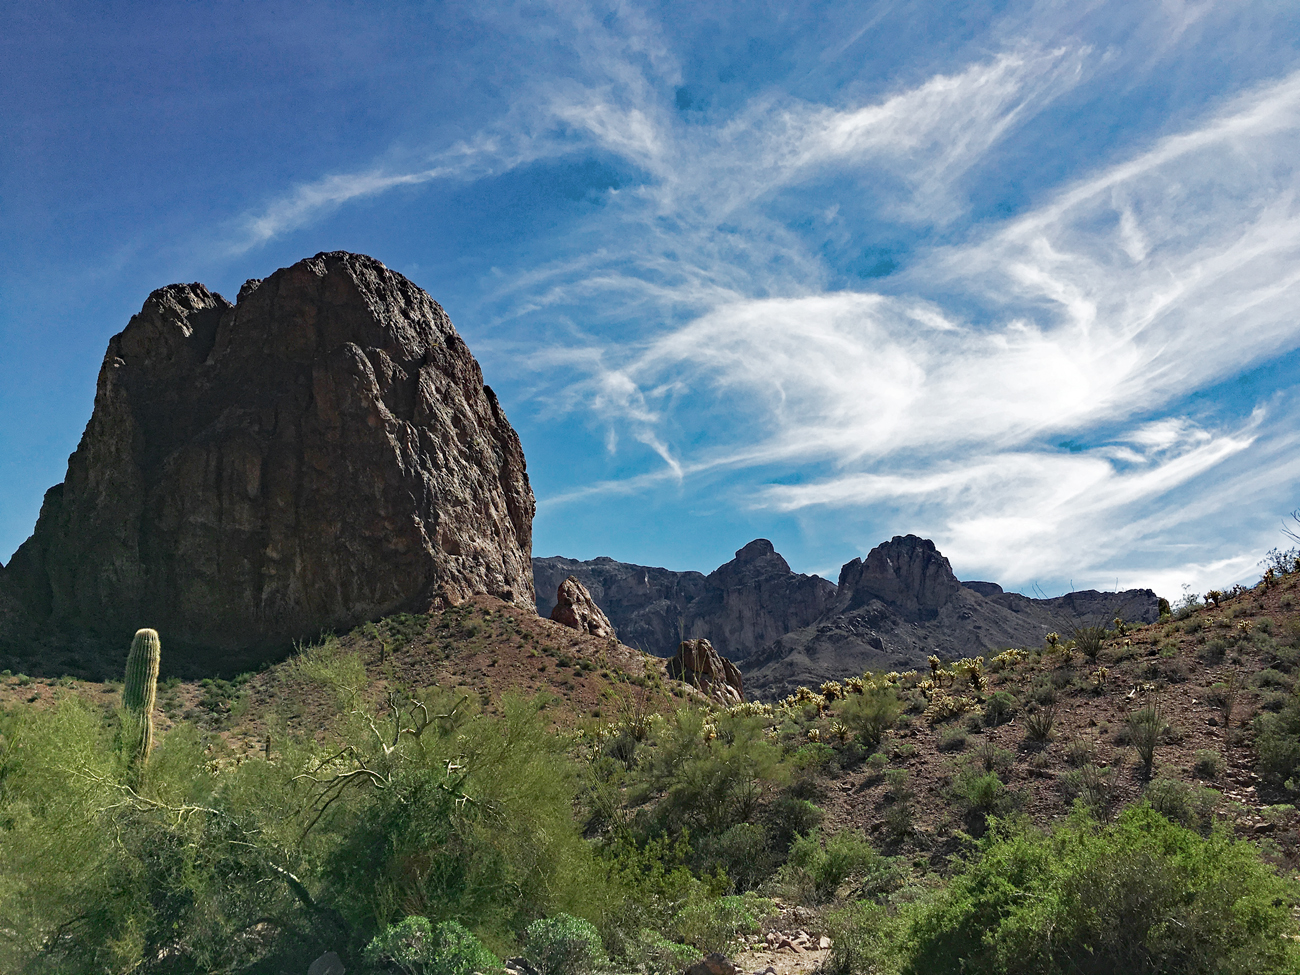 Dark brown rock formations and bright green desert vegetation in Kofa Queen Canyon